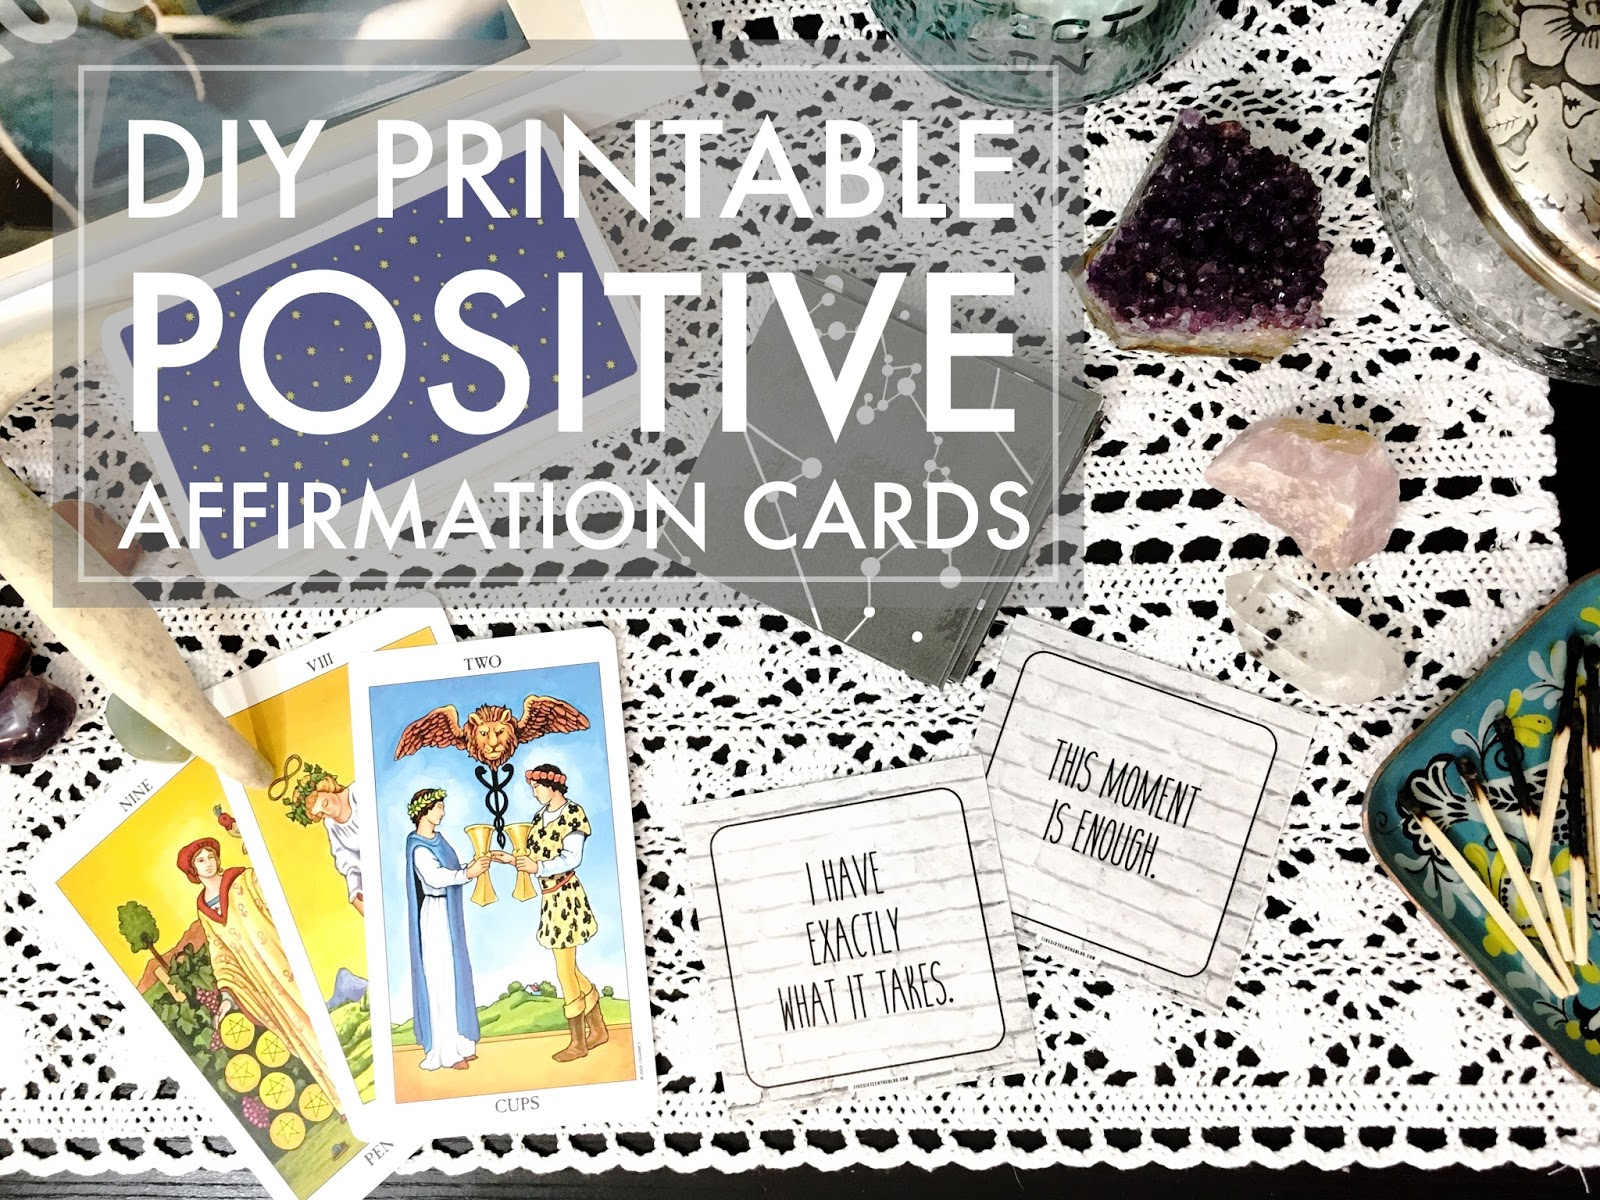 photo about Affirmation Cards Printable titled 5 sixteenths web site: Create it Monday // Printable Favourable